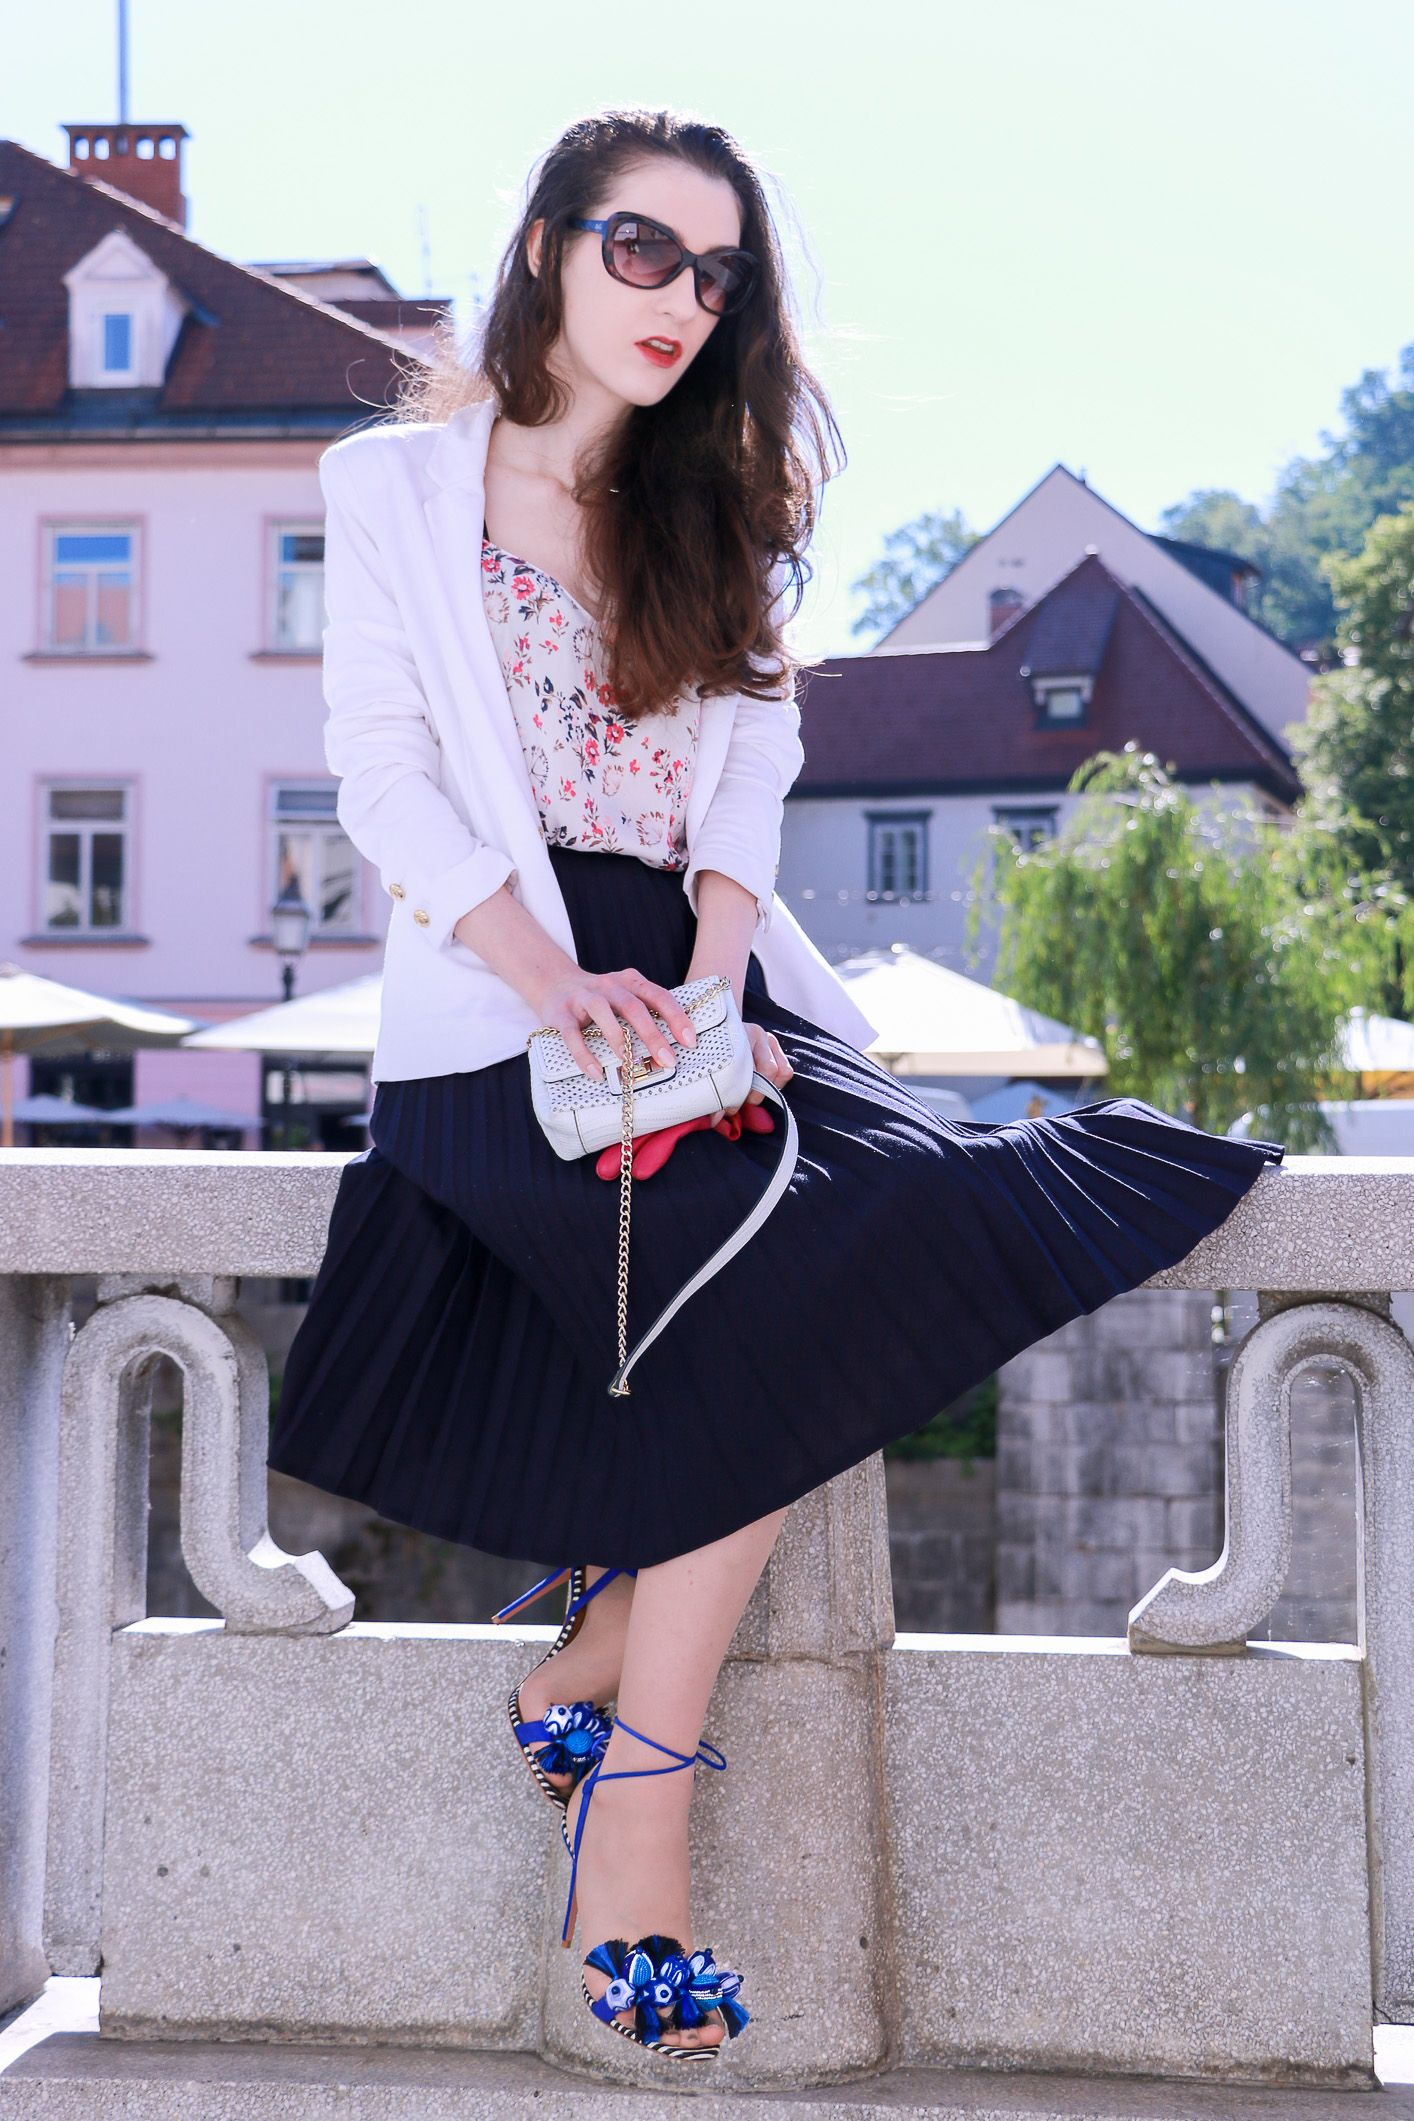 968c1352ca Fashion blogger Veronika Lipar of Brunette From Wall Street sharing how to  style black vintage midi